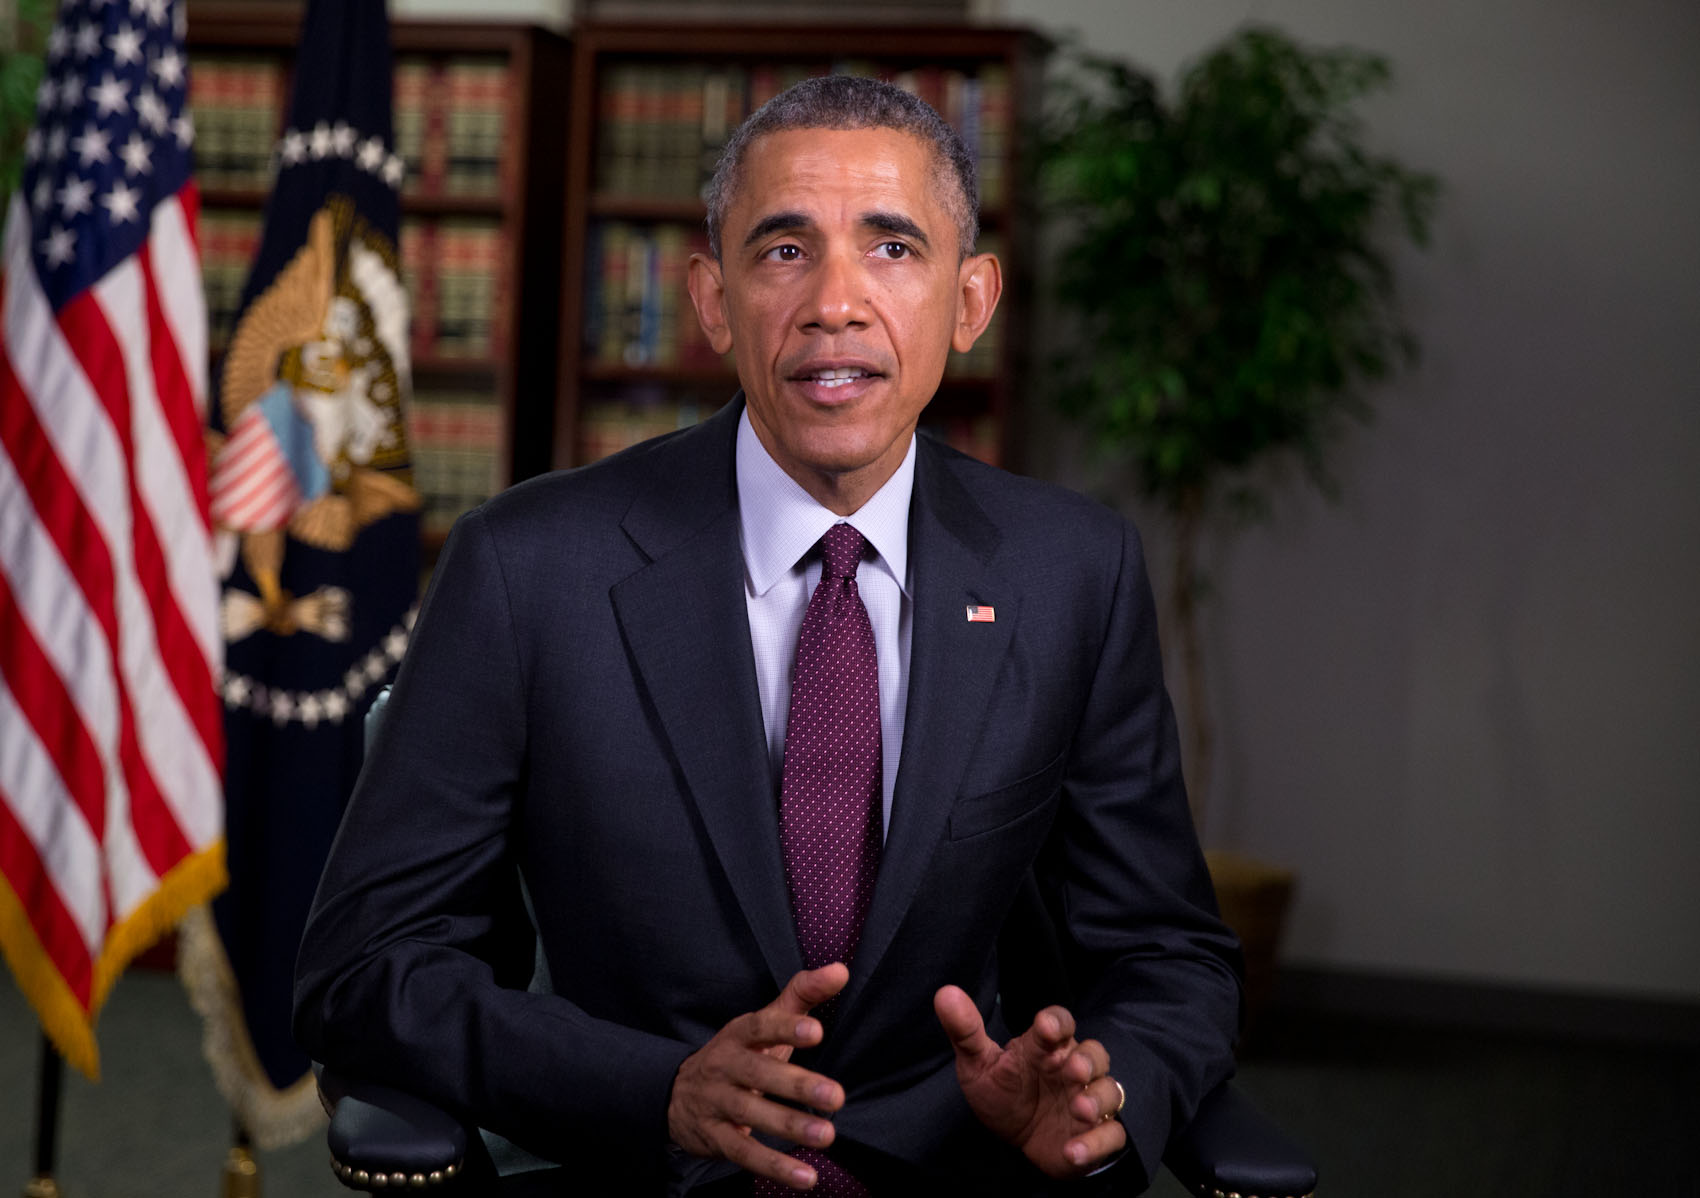 President Barack Obama tapes the weekly address at Hill Air Force Base in Layton, Utah, April 3, 2015